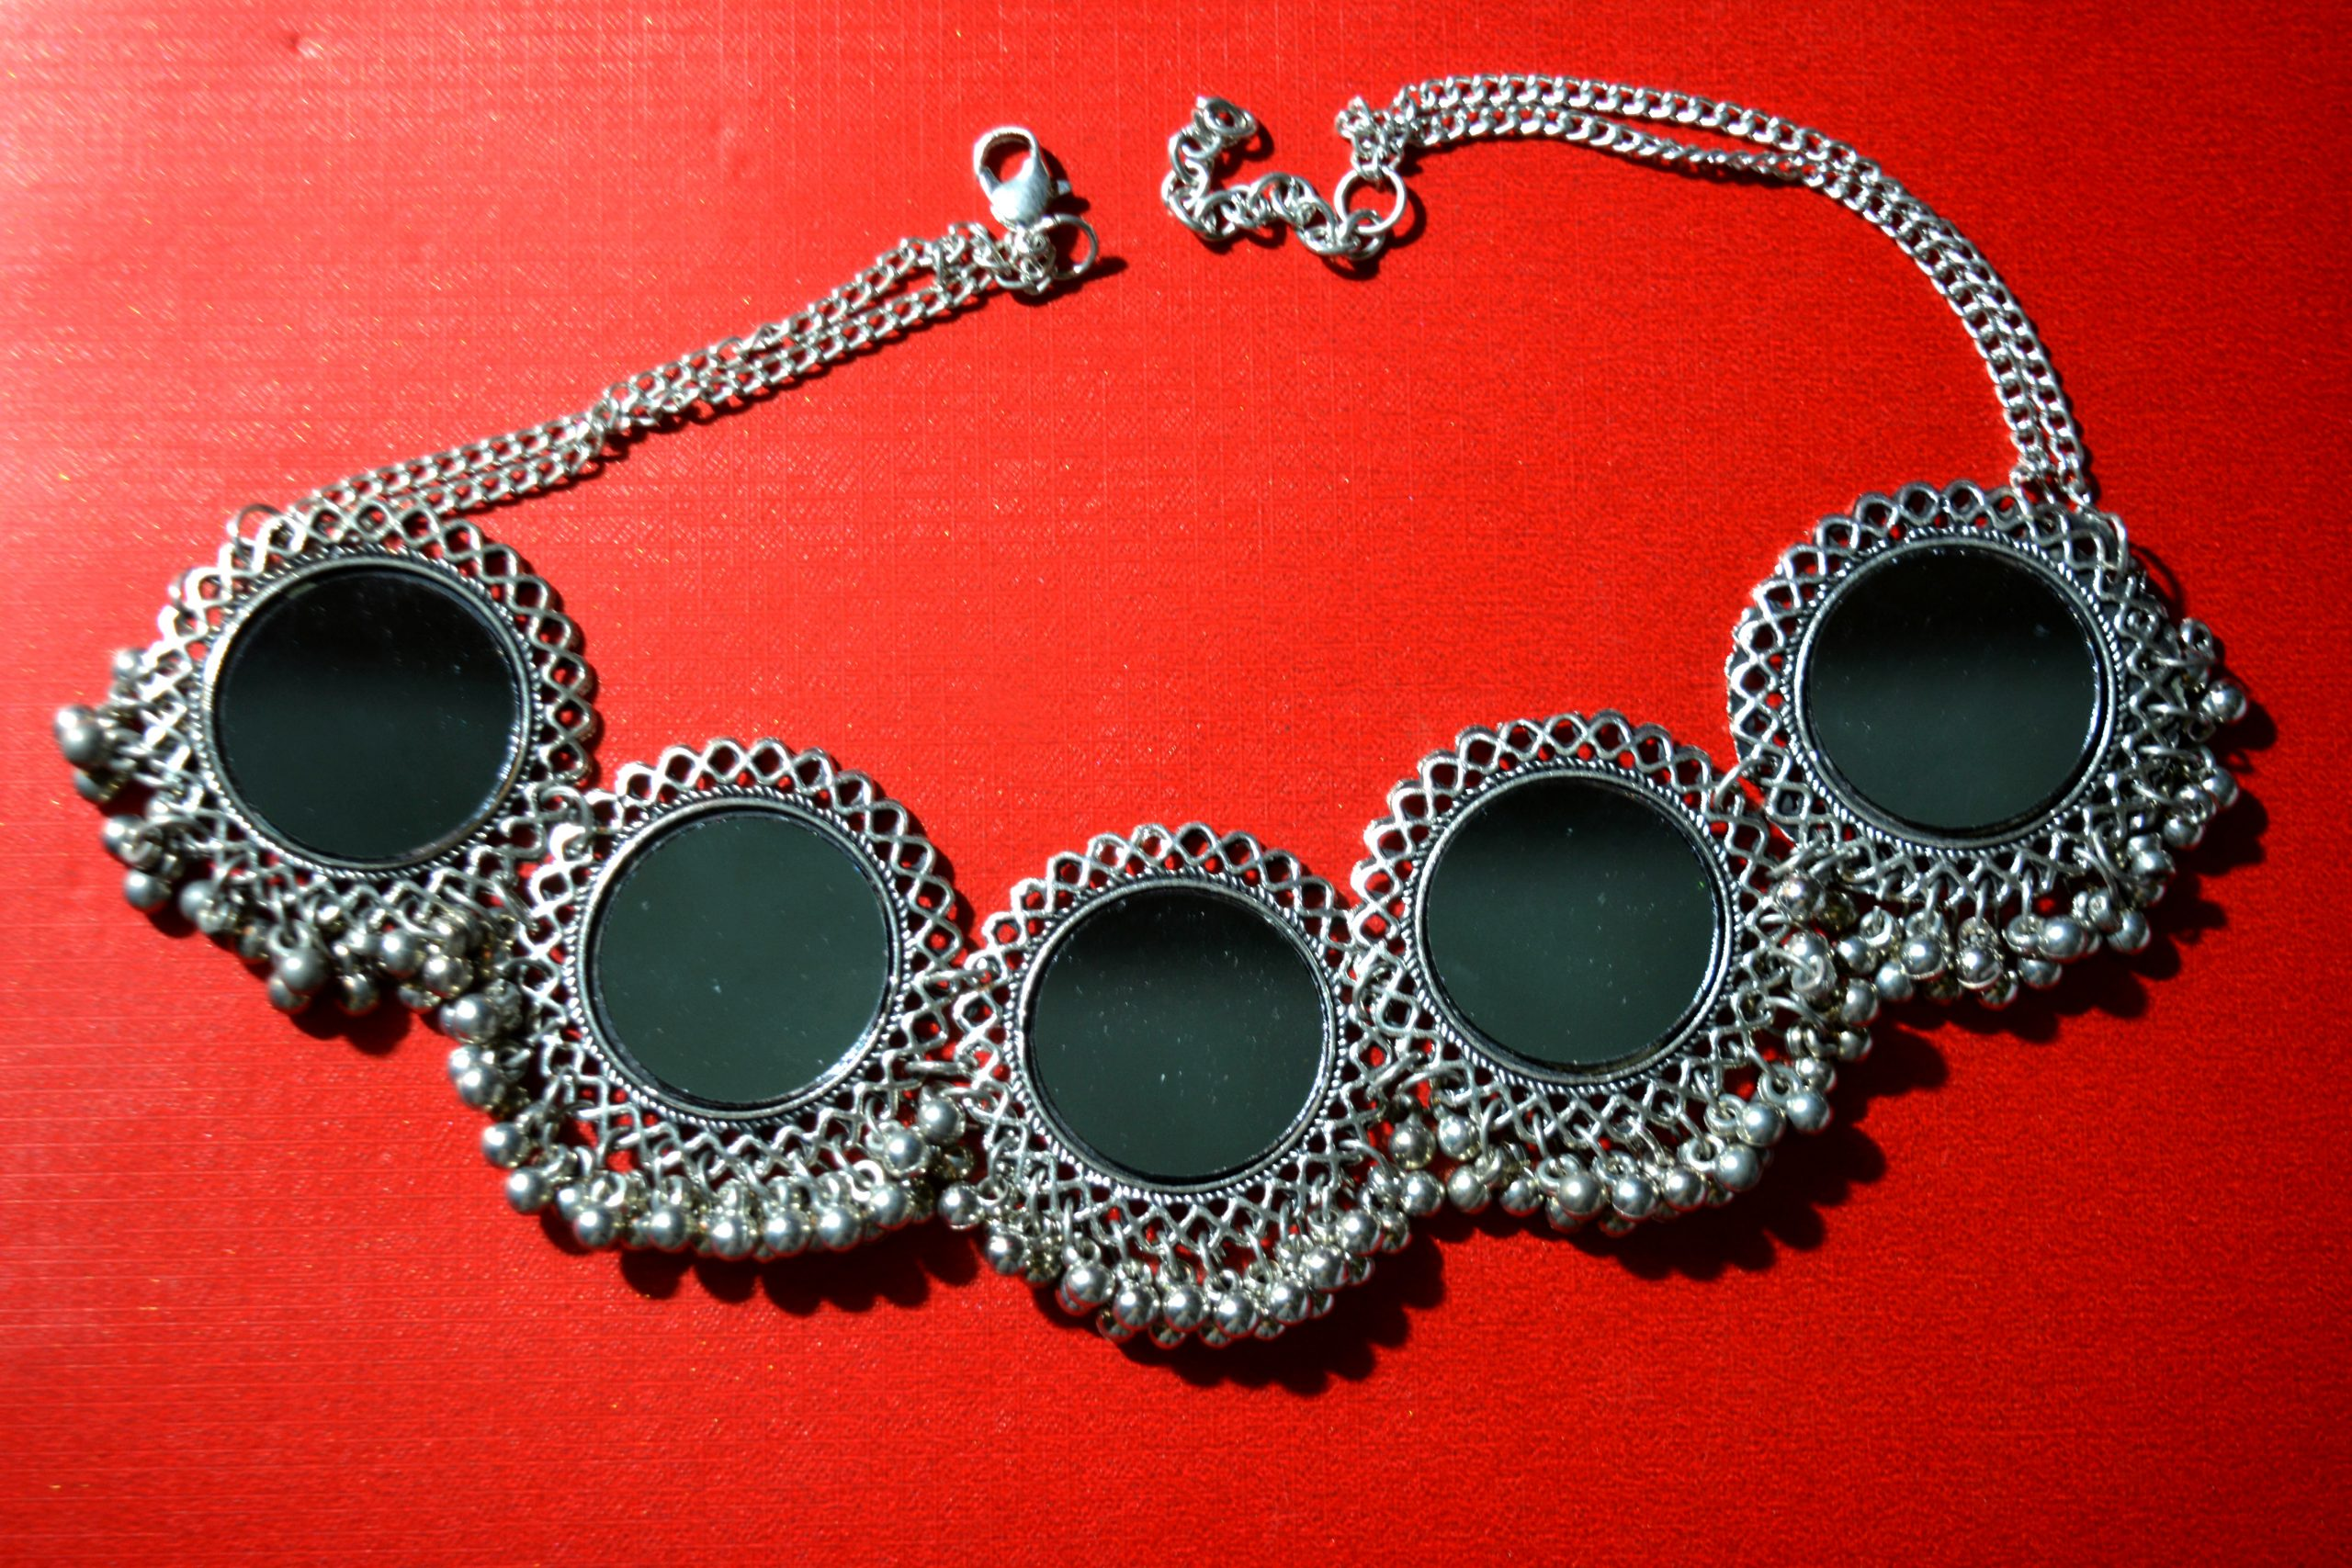 A silver necklace